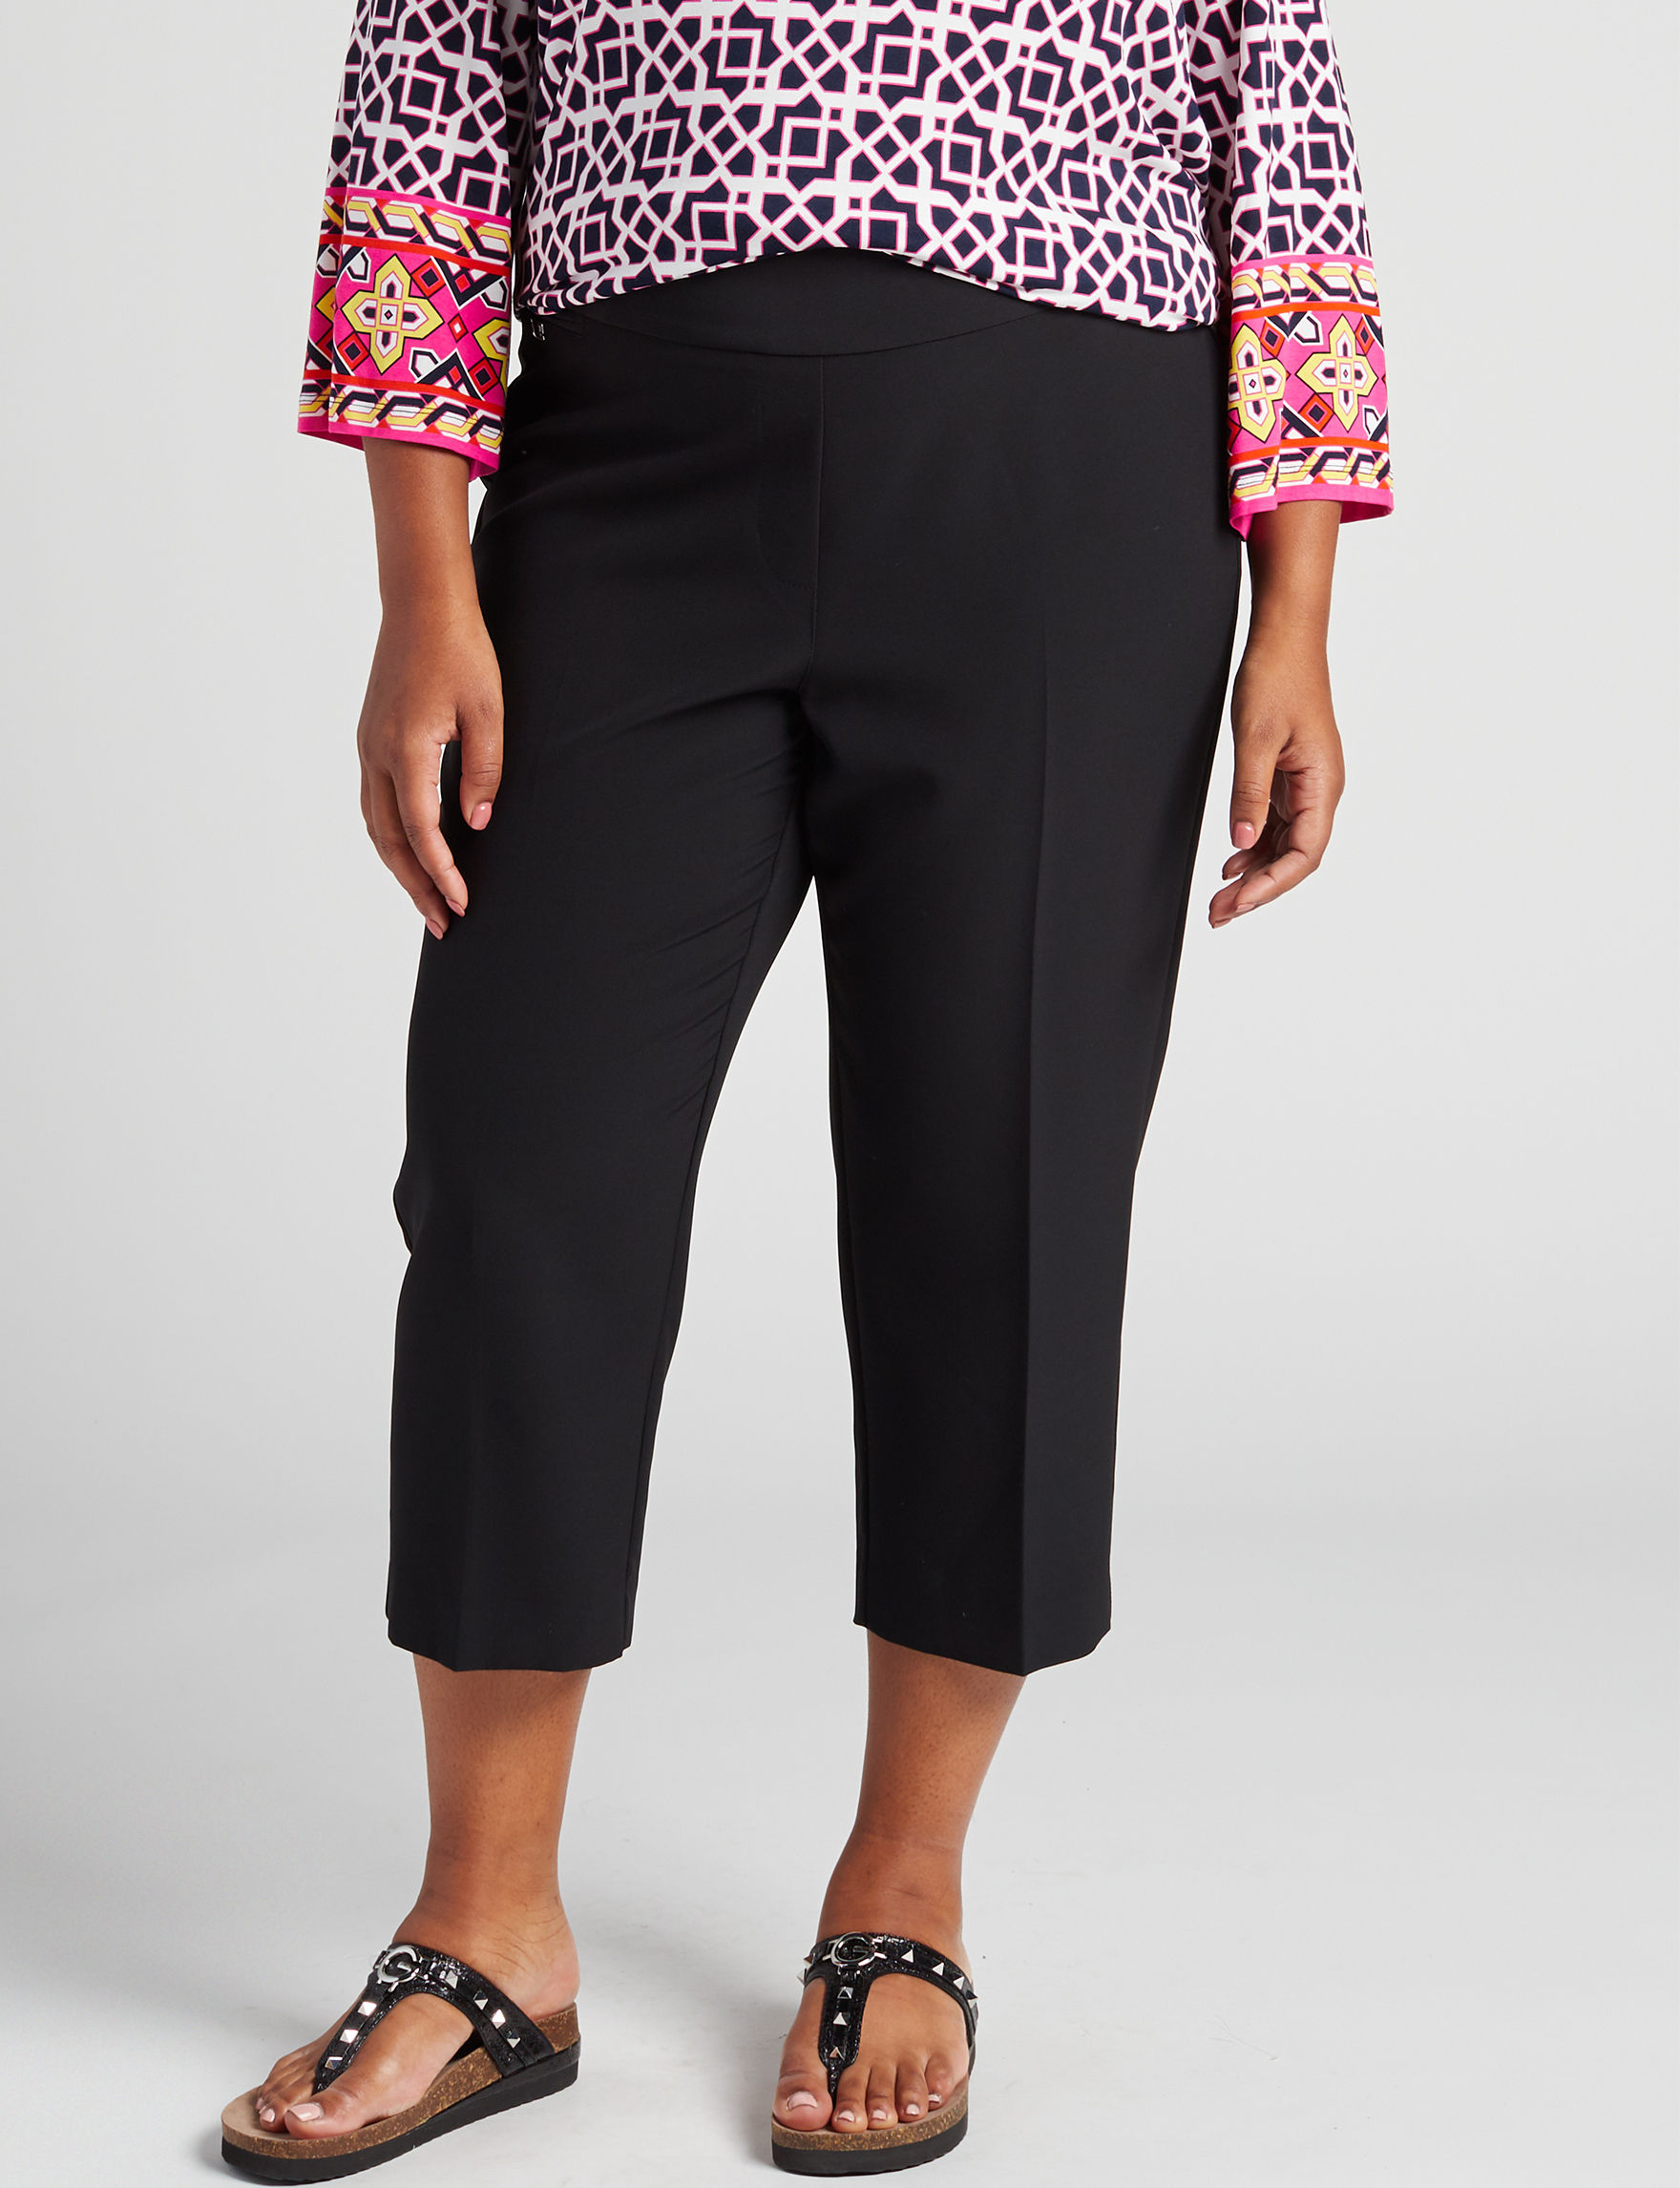 Valerie Stevens Black Capris & Crops Straight Stretch